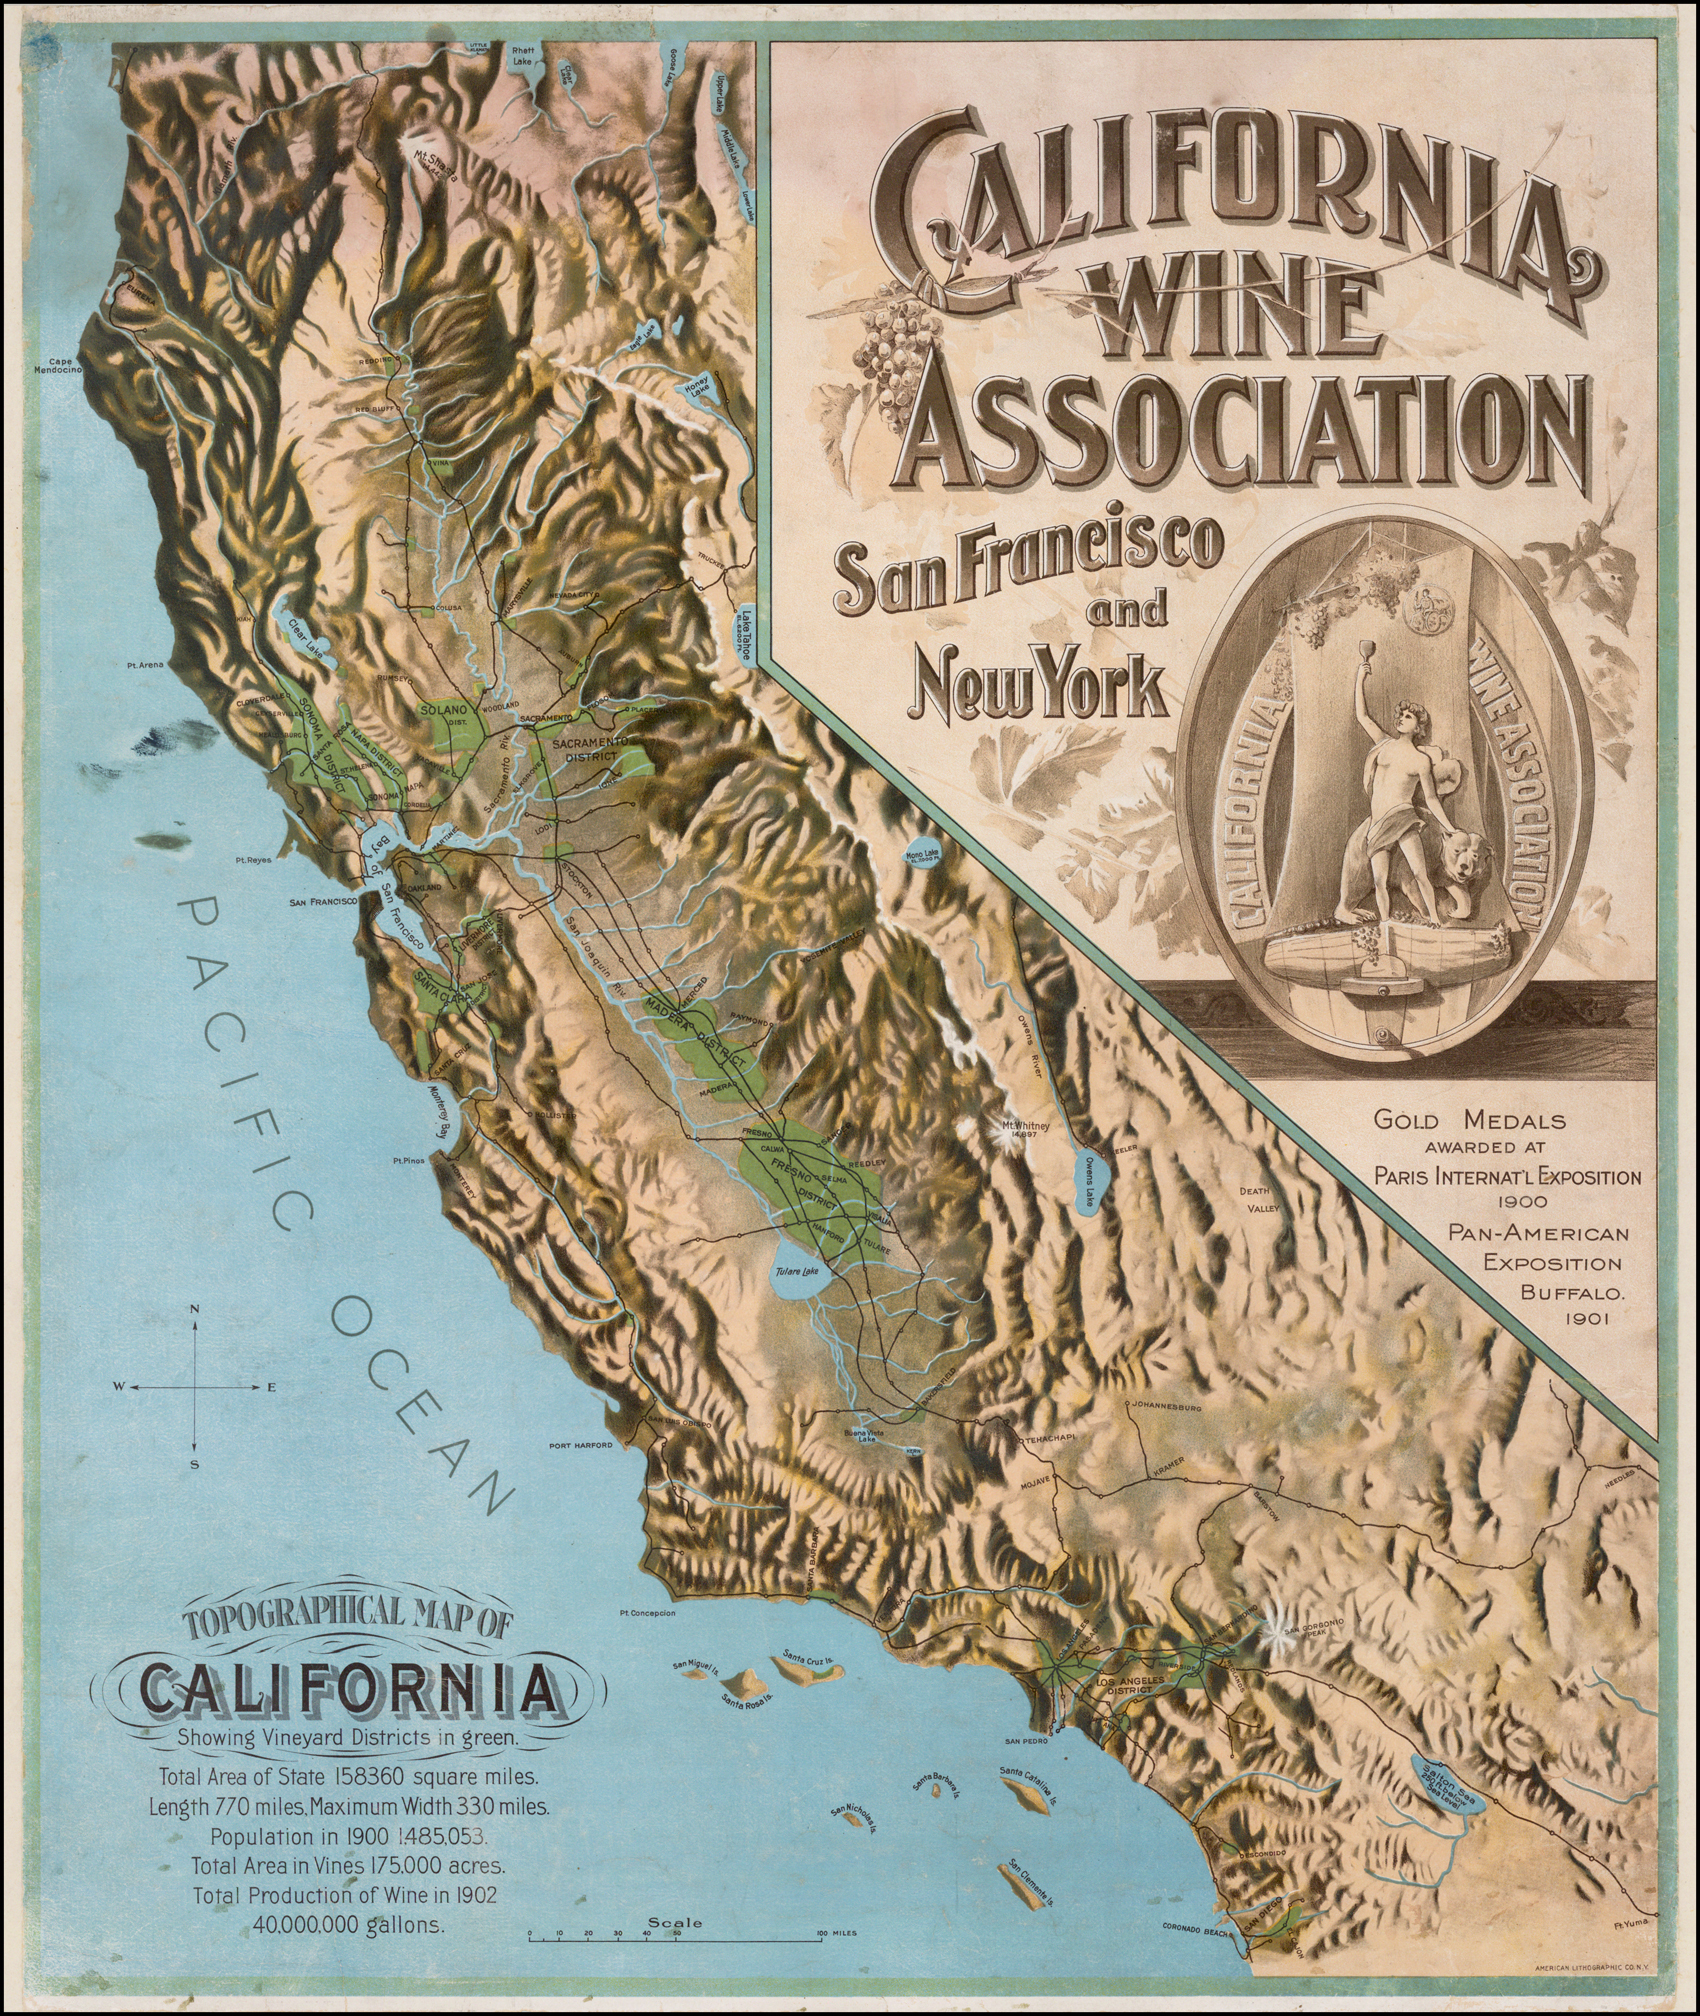 California Map Topography.Topographical Map Of California Showing Vineyard Districts In Green